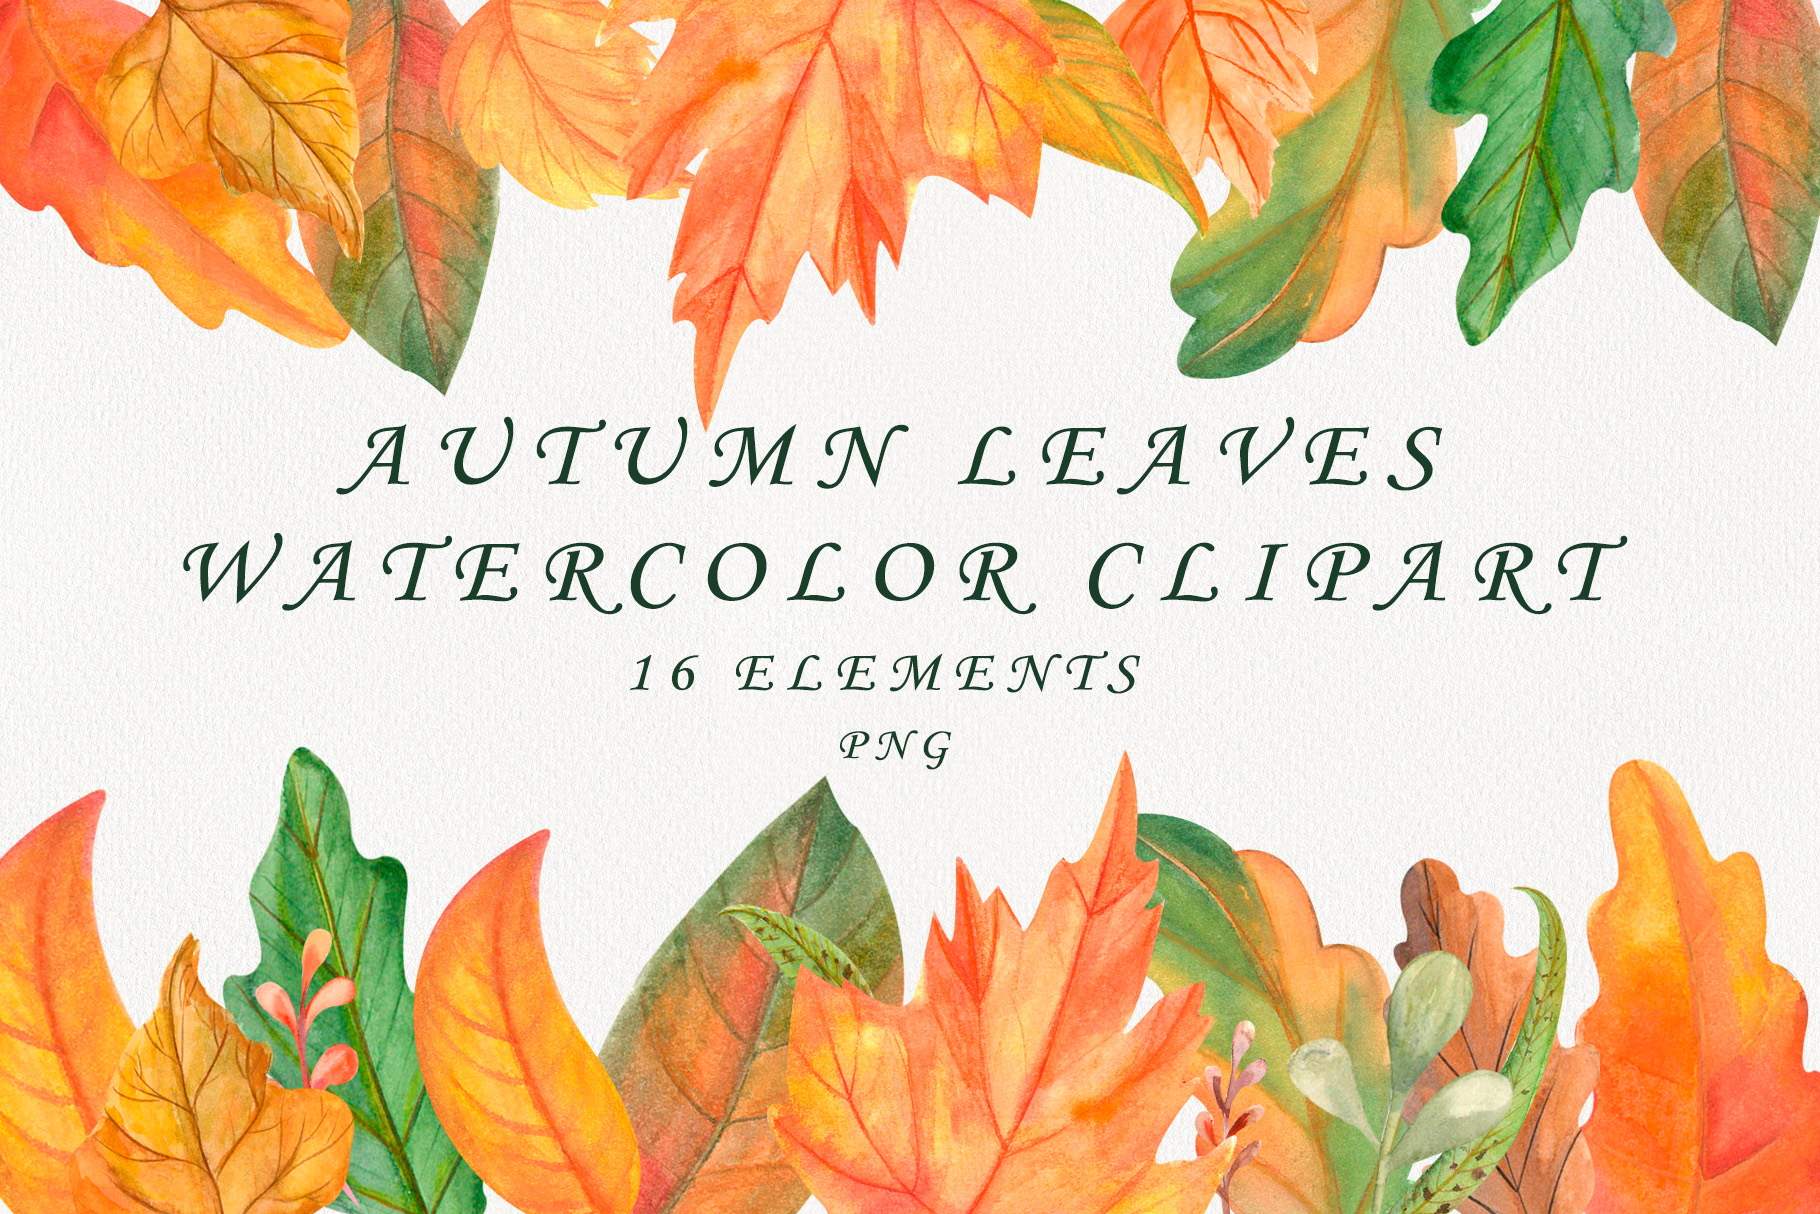 Autumn leaves watercolor clipart example image 1